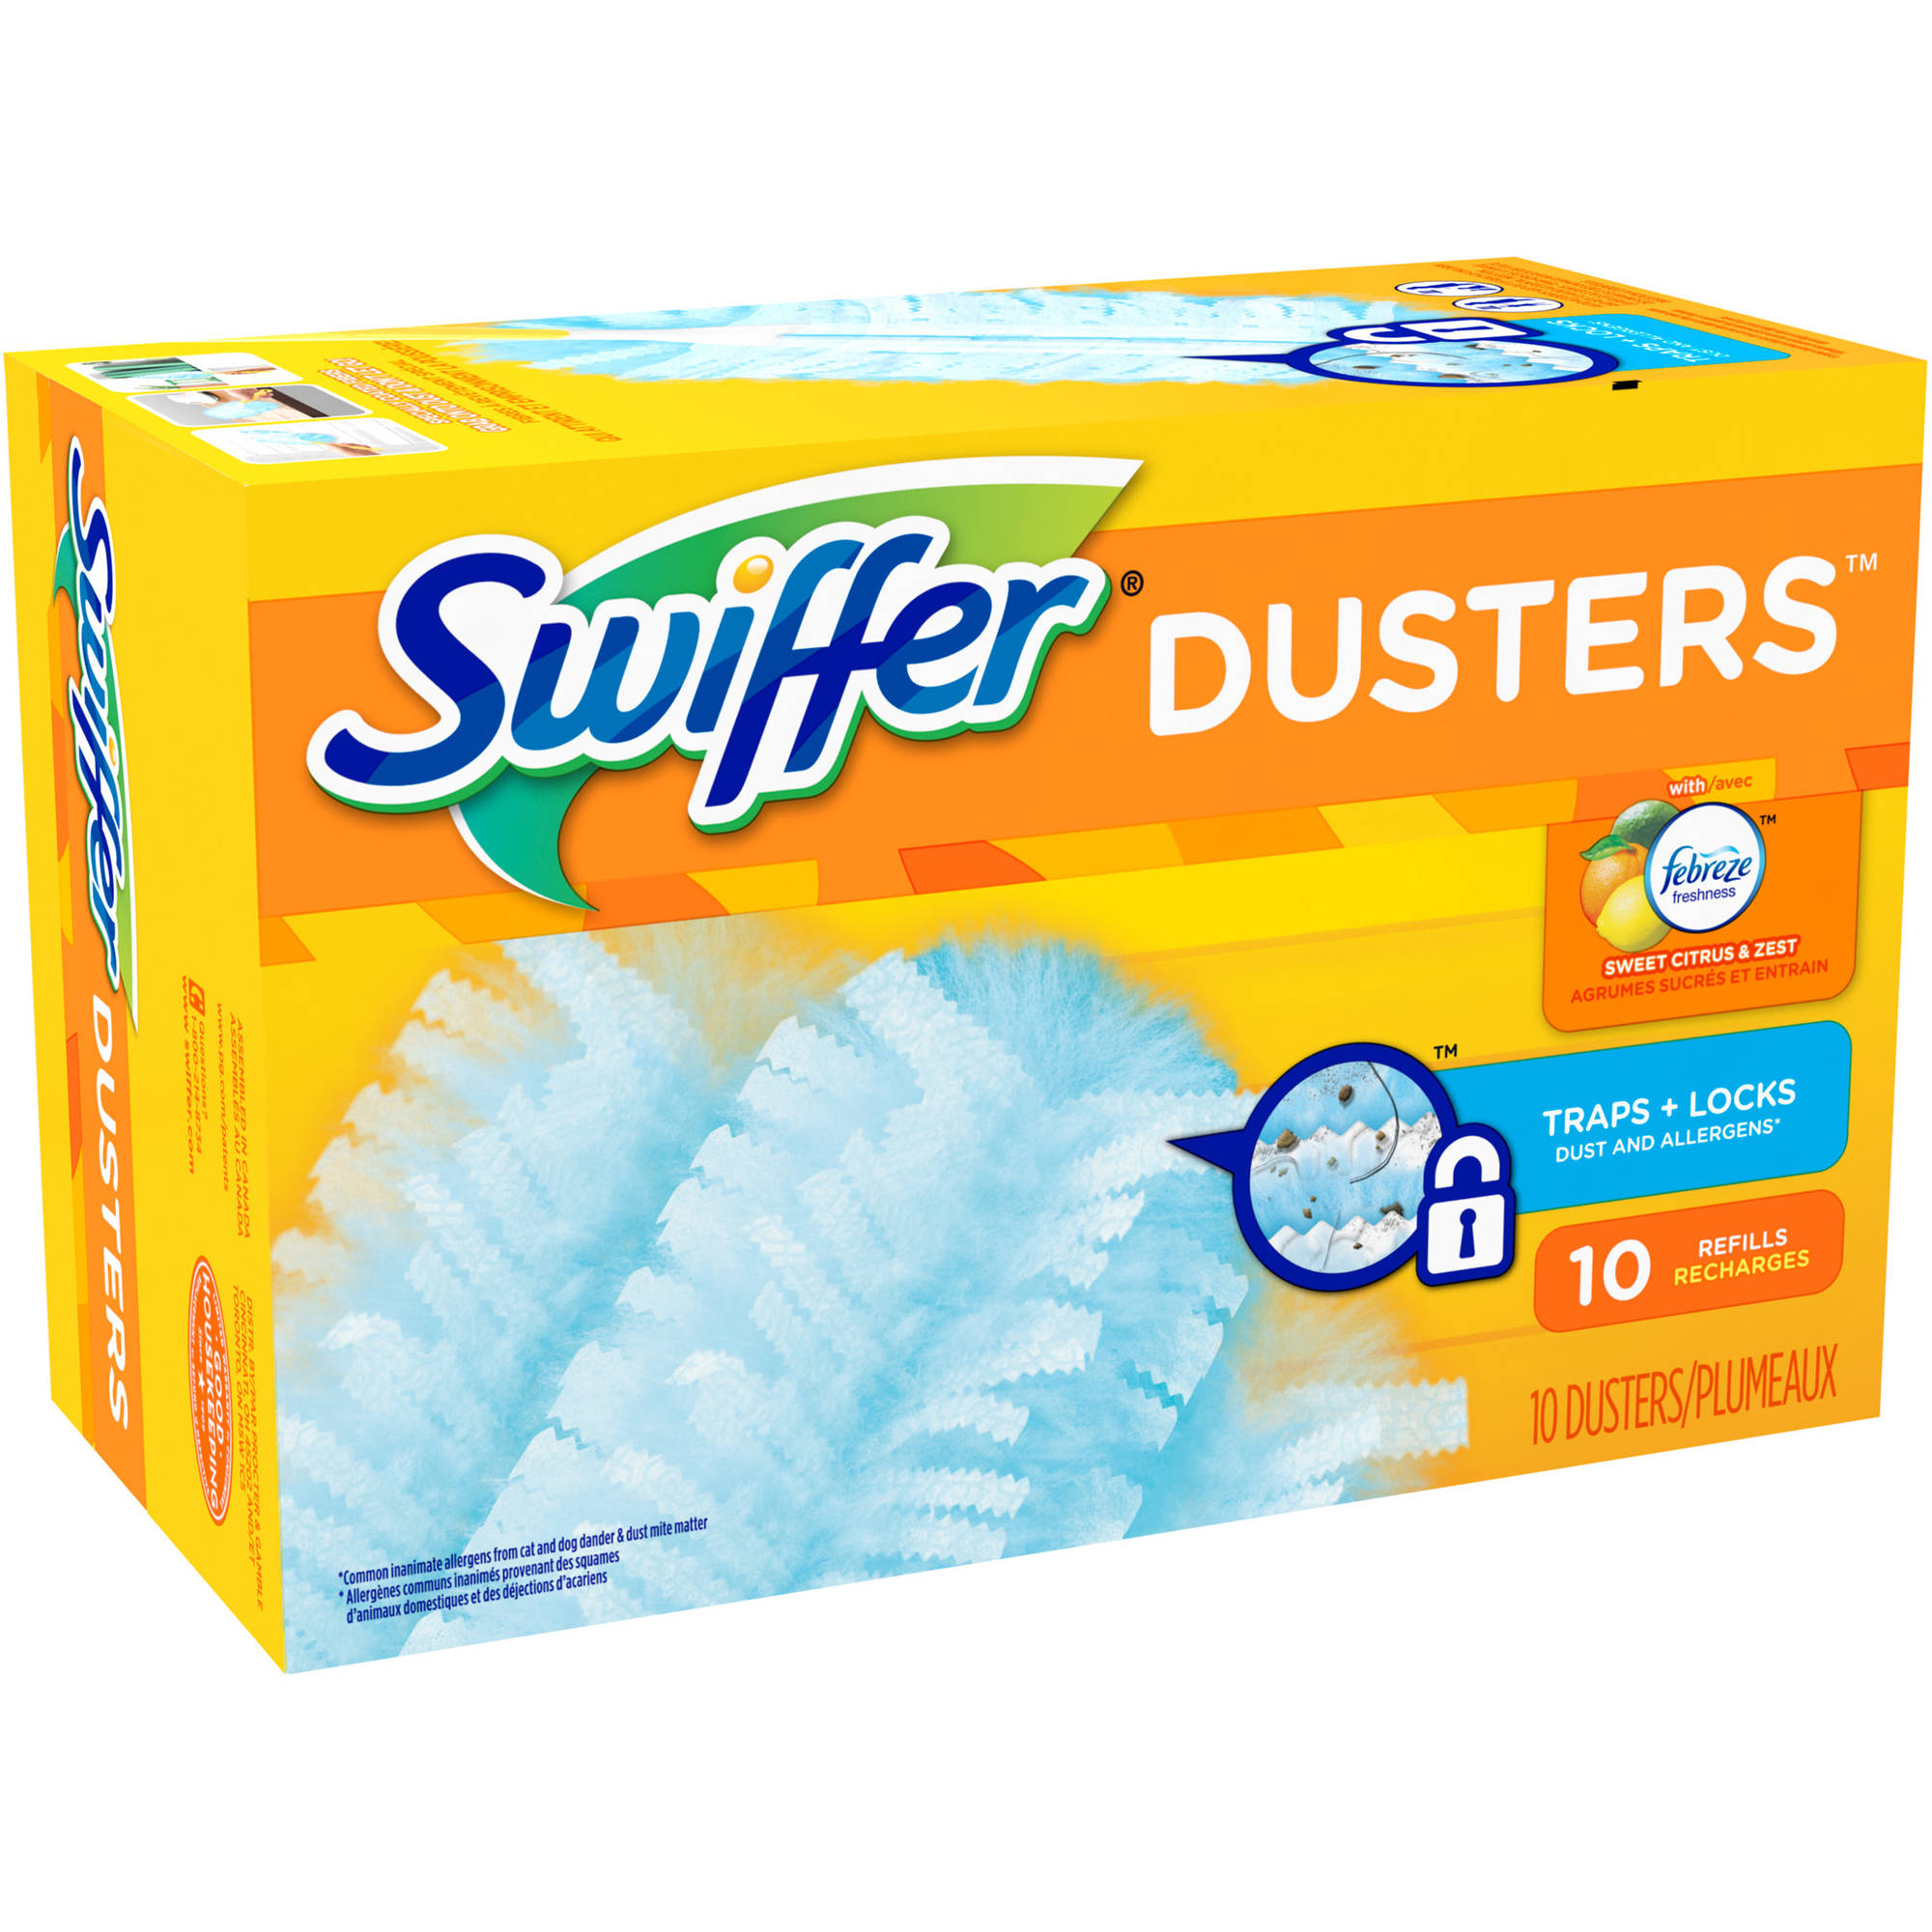 Swiffer Dusters Refills, Citrus & Zest (choose your size)